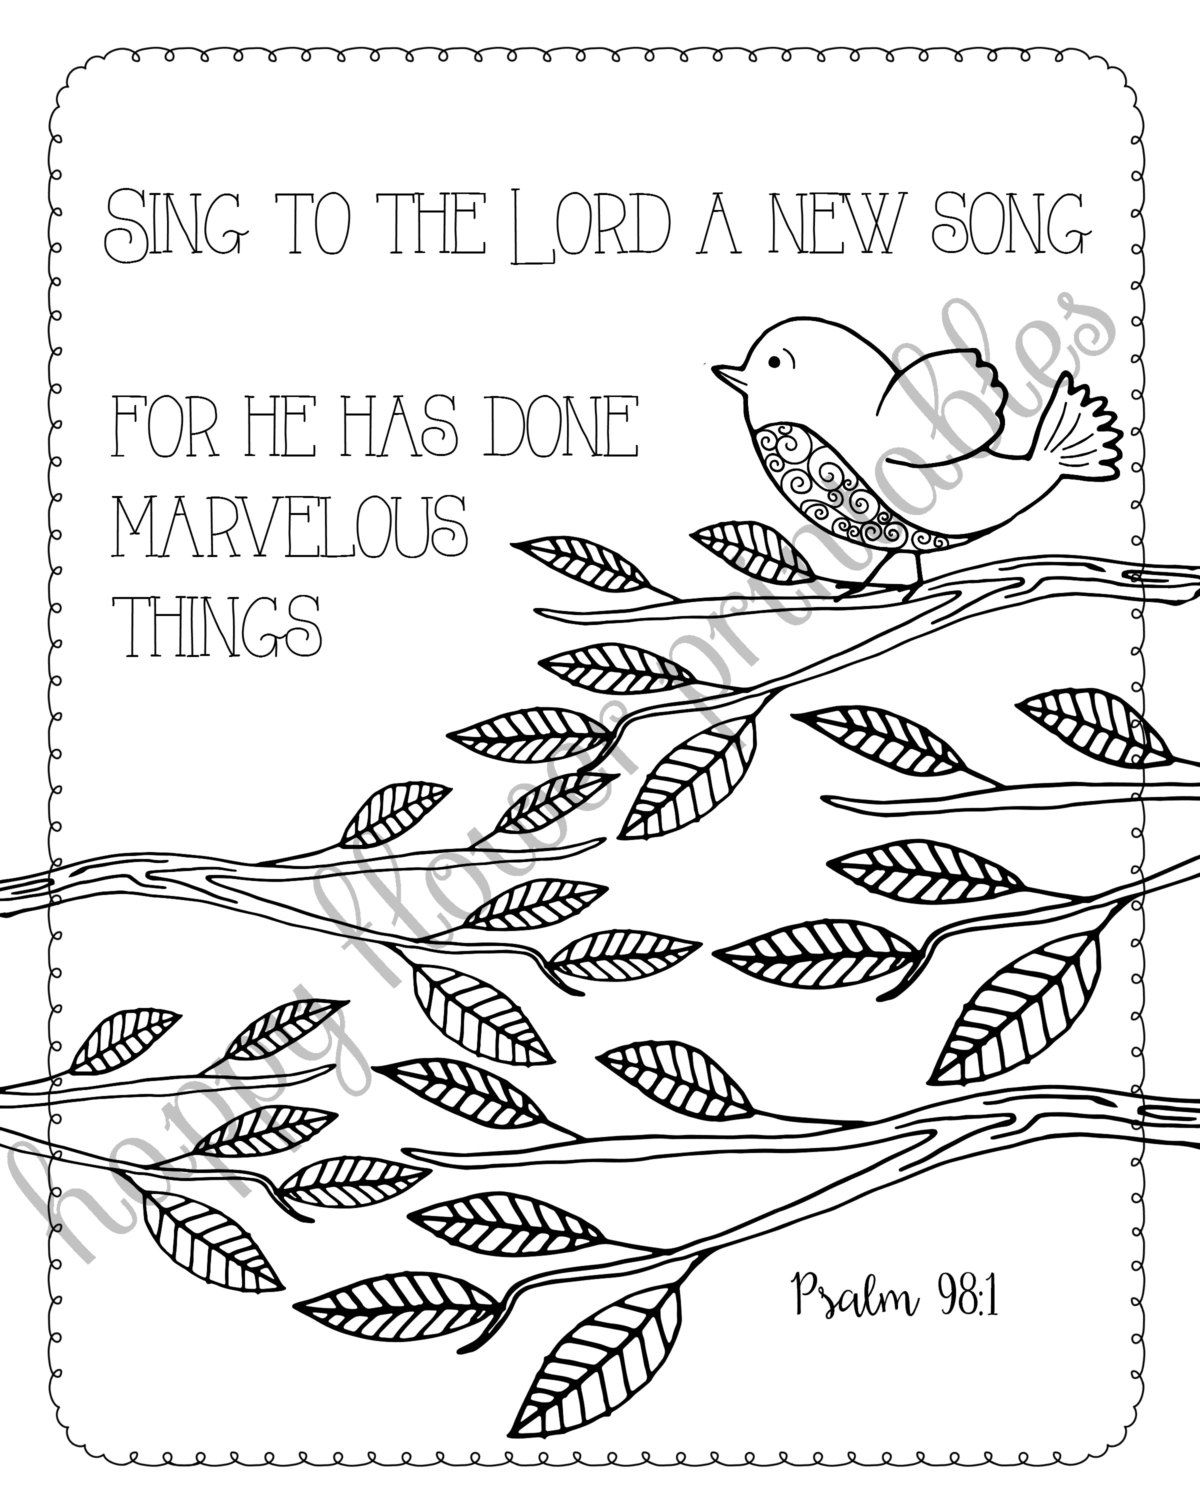 5 Bible Verse Coloring Pages Set Inspirational Quotes DIY Adult Printable Sheets JPG Instant Download Floral Wreath